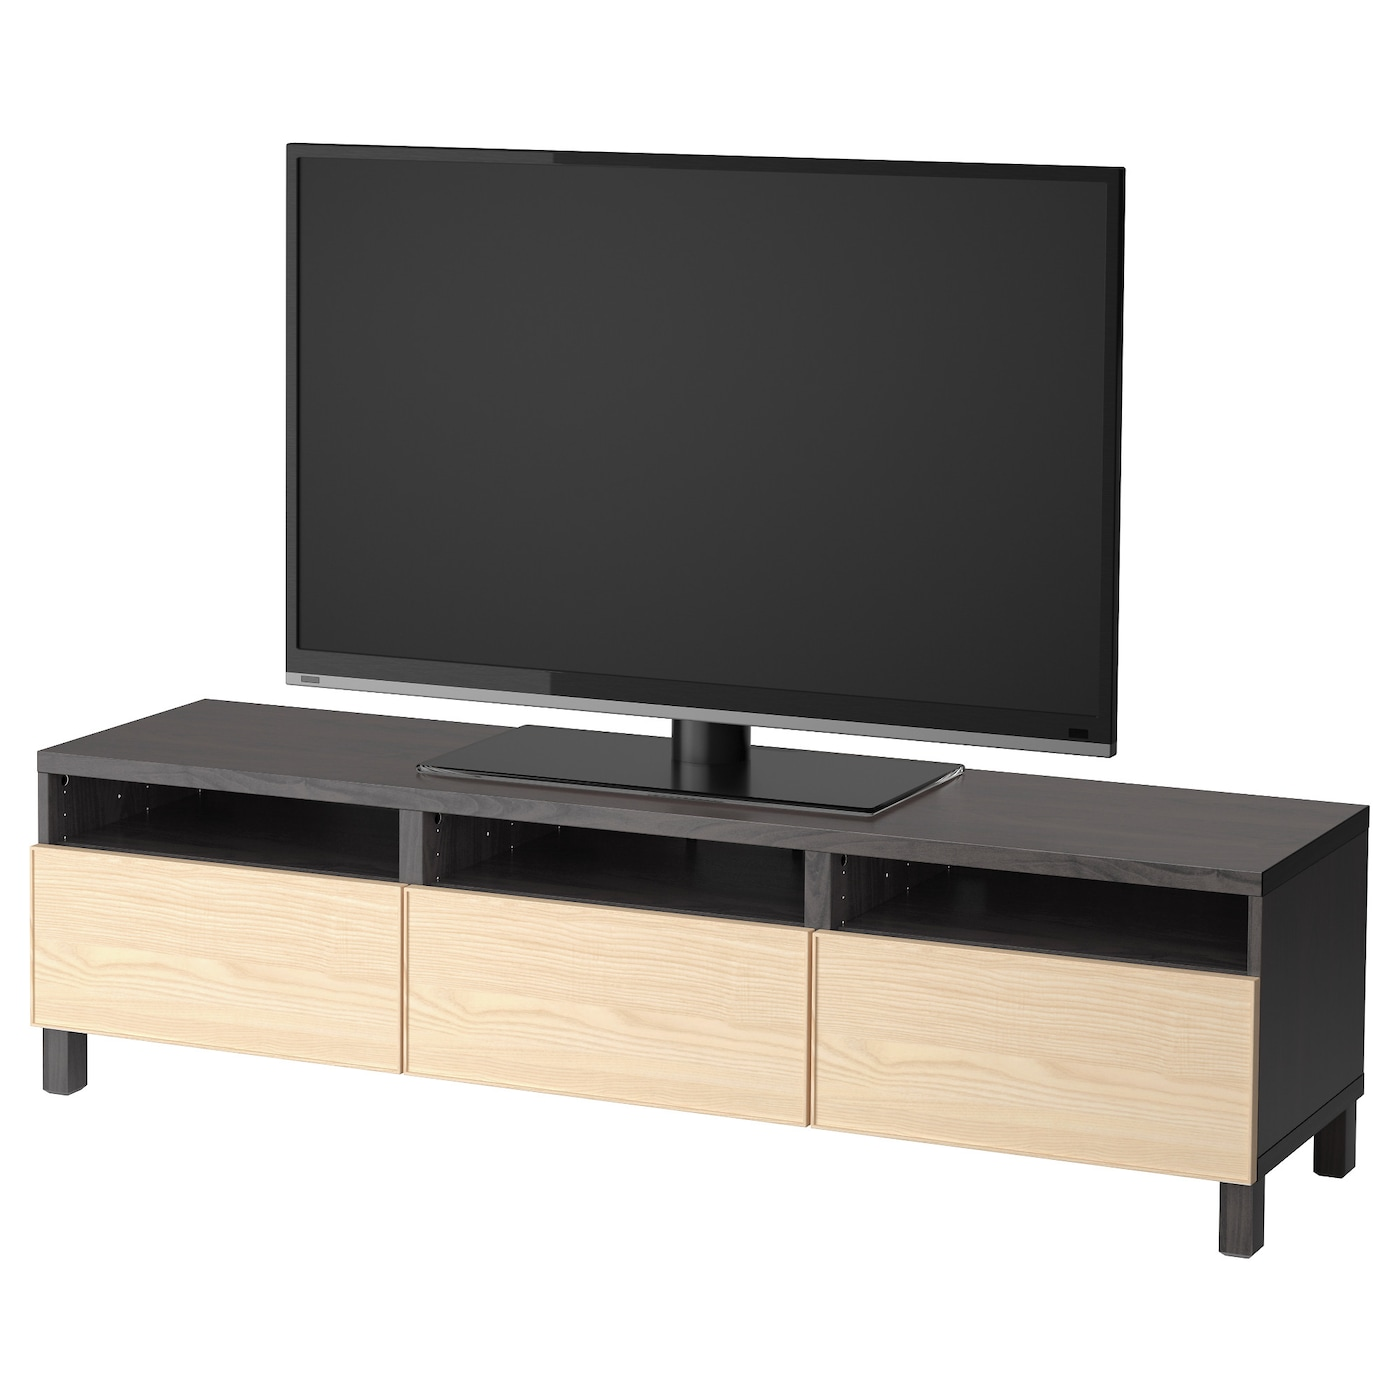 Best Tv Bench With Drawers Black Brown Inviken Ash Veneer 180x40x48 Cm Ikea